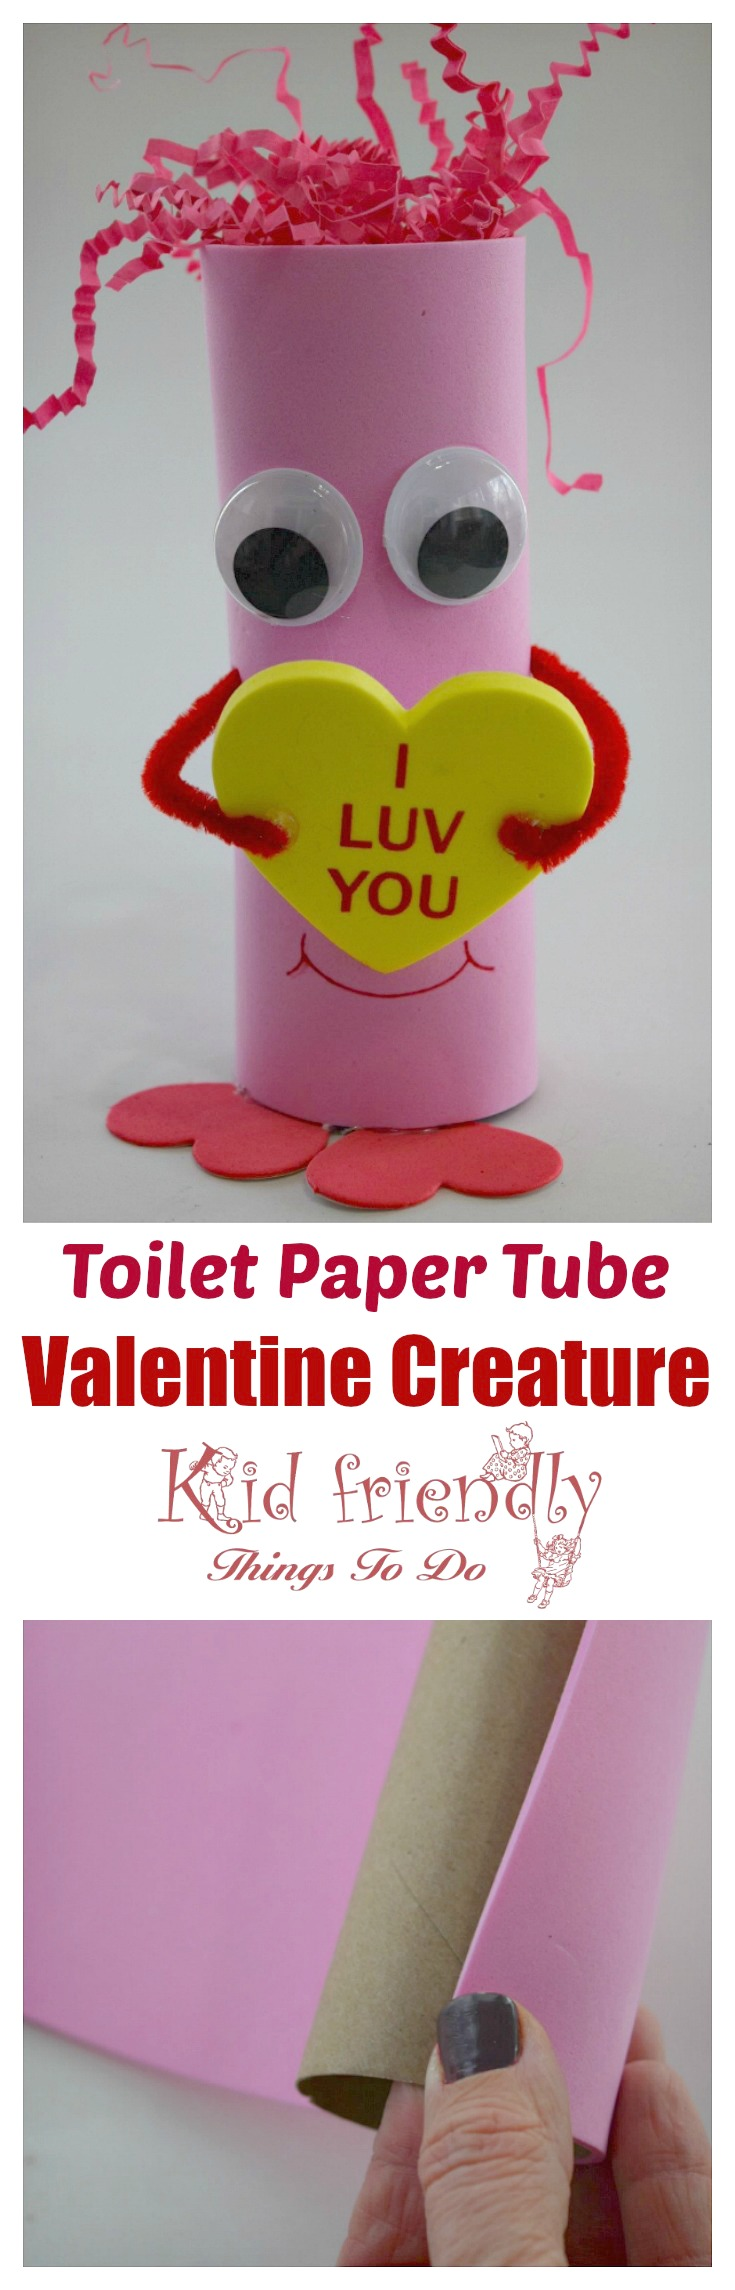 So cute! Look at this easy and  adorable Valentine Creature! Perfect for preschool kids and elementary school Valentine's Day party craft. You can get everything at the Dollar Store! www.kidfriendlythingstodo.com